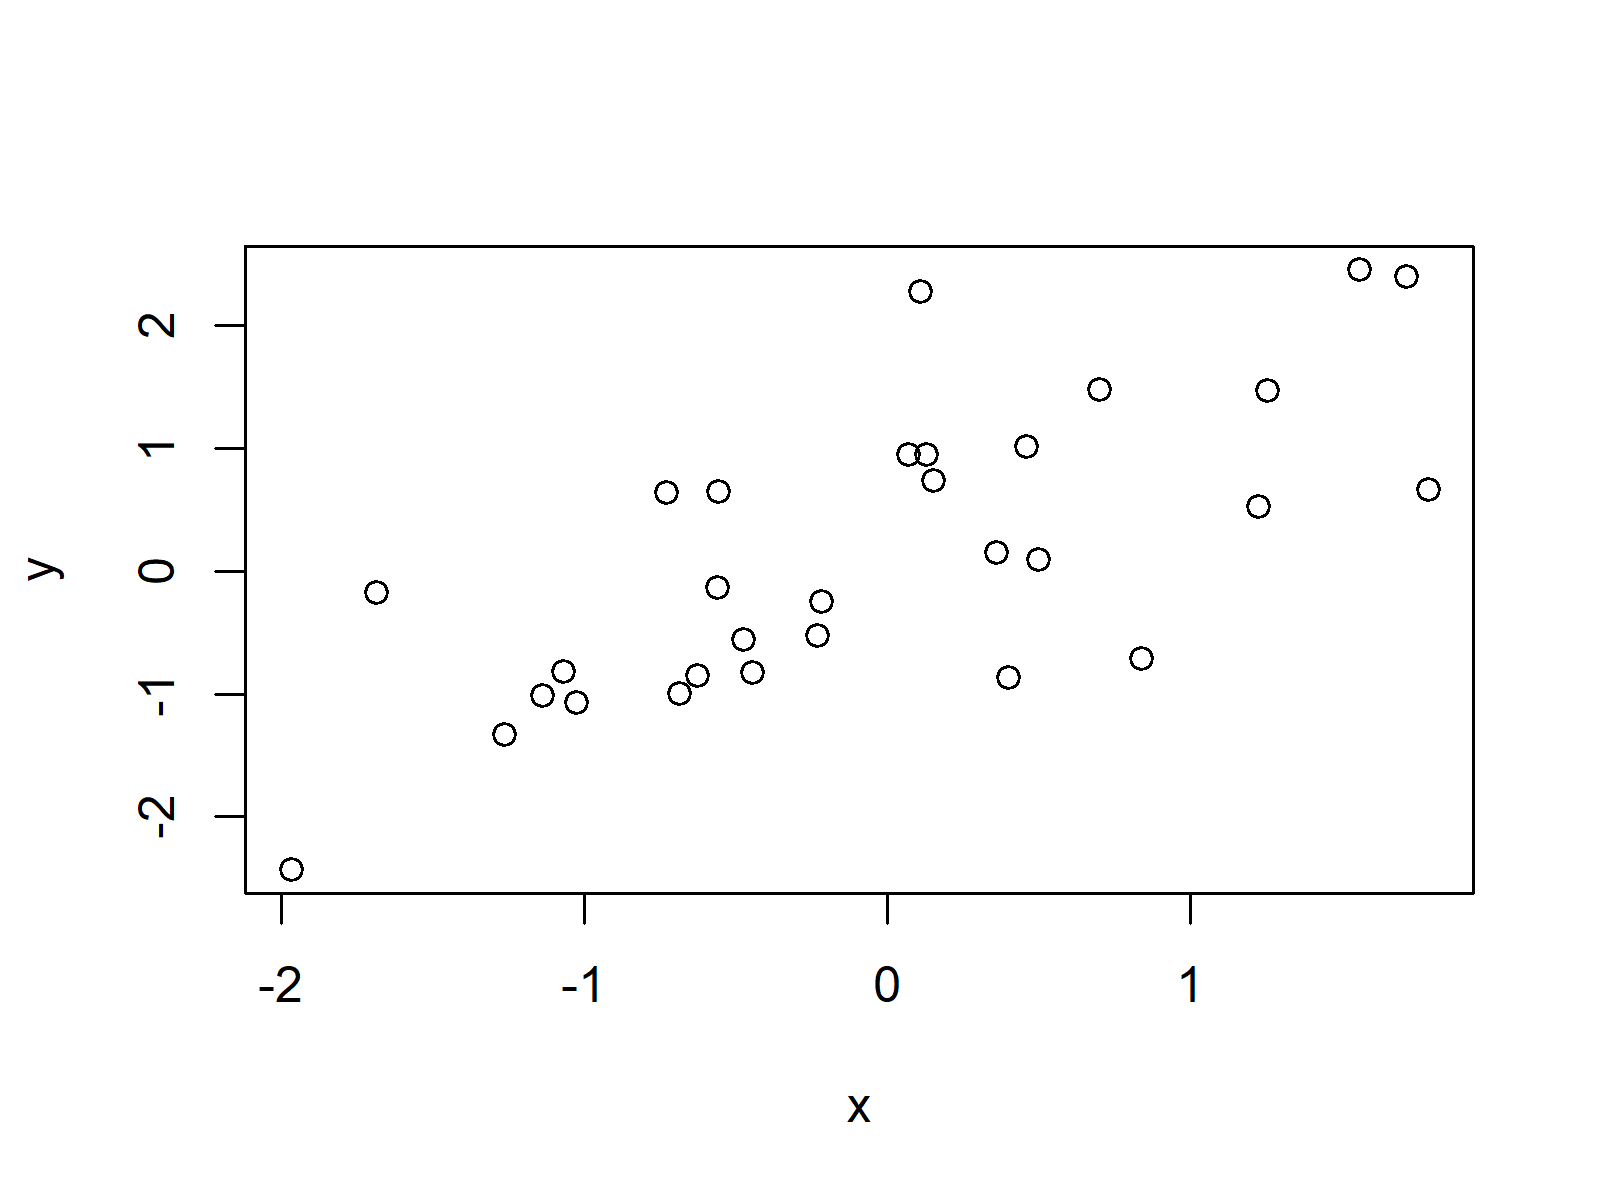 Example Scatterplot in R